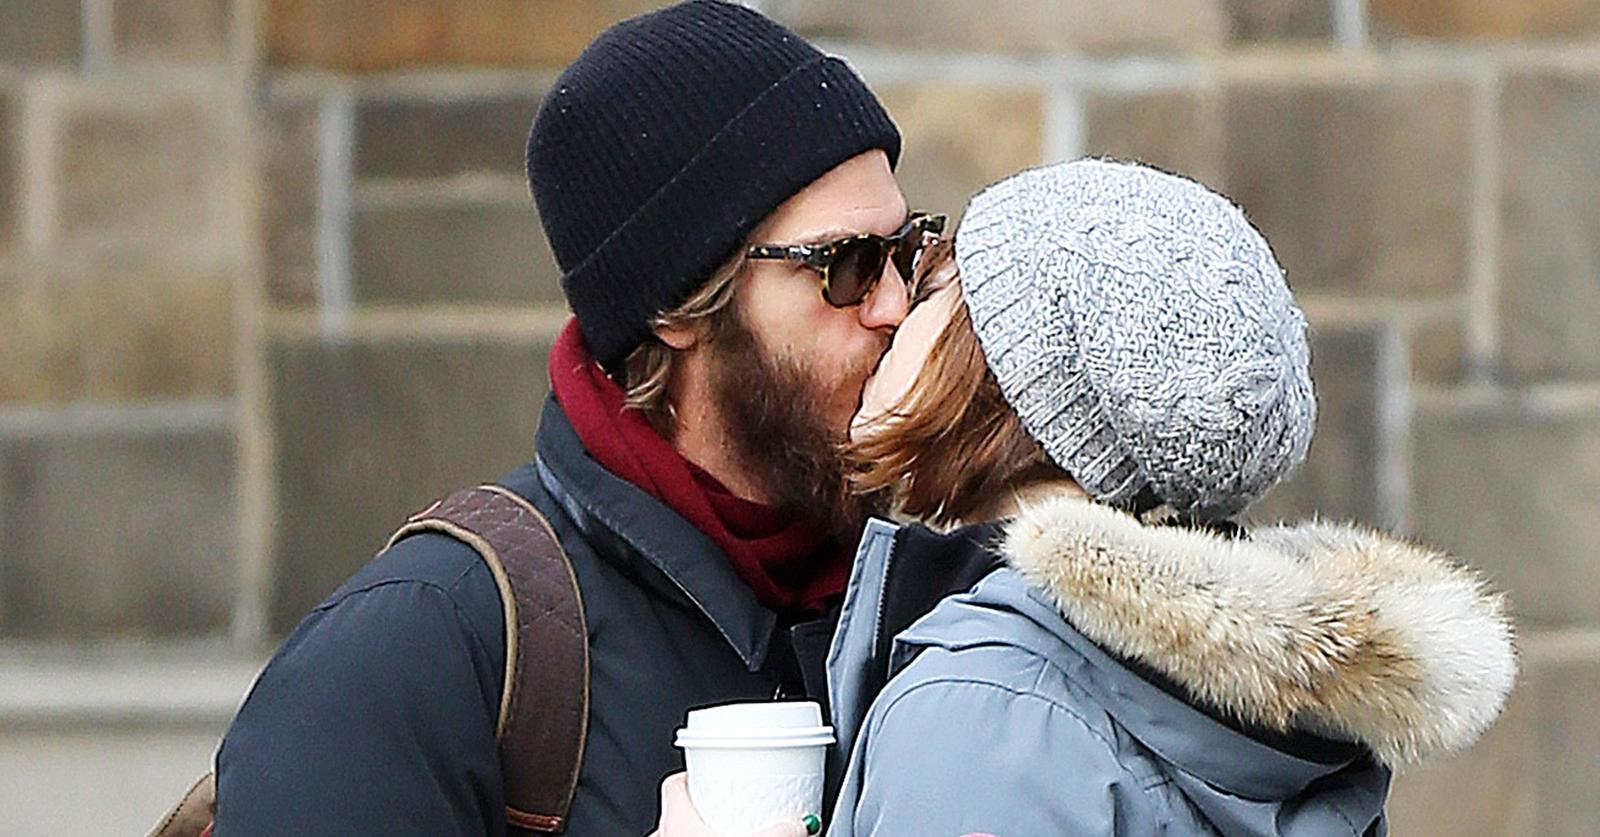 Andrew Garfield Is Trying To Win Back Ex-Girlfriend Emma